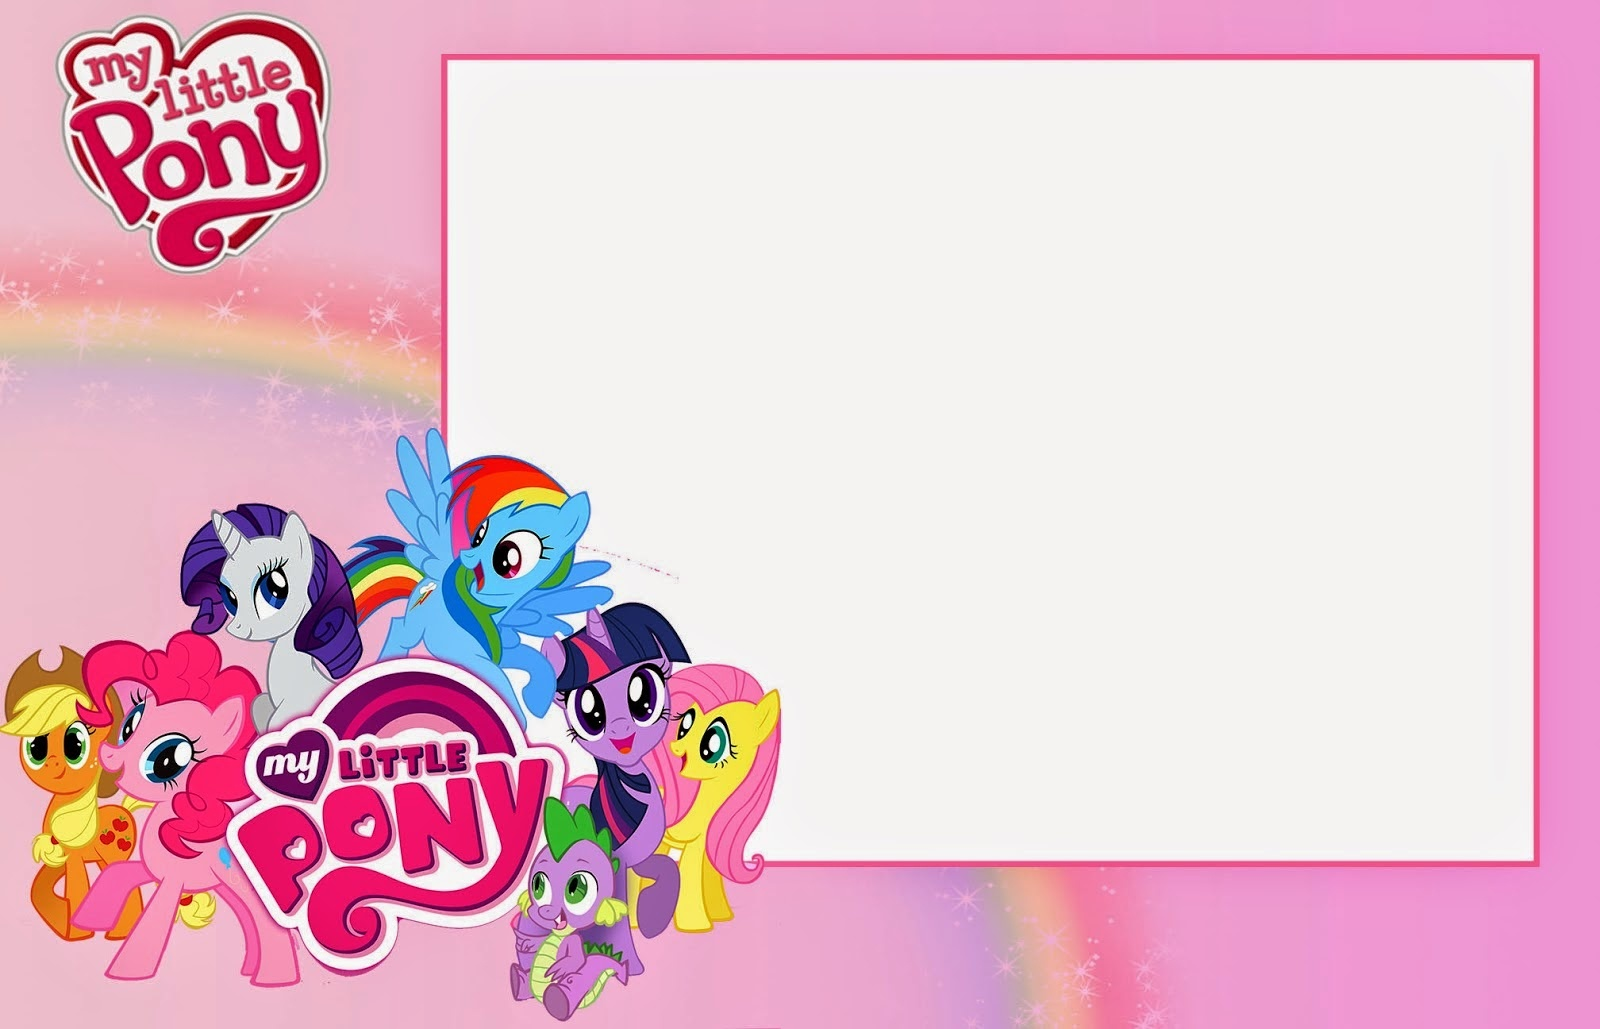 My Little Pony Party: Free Printable Invitations. - Oh My Fiesta! In - Free My Little Pony Party Printables